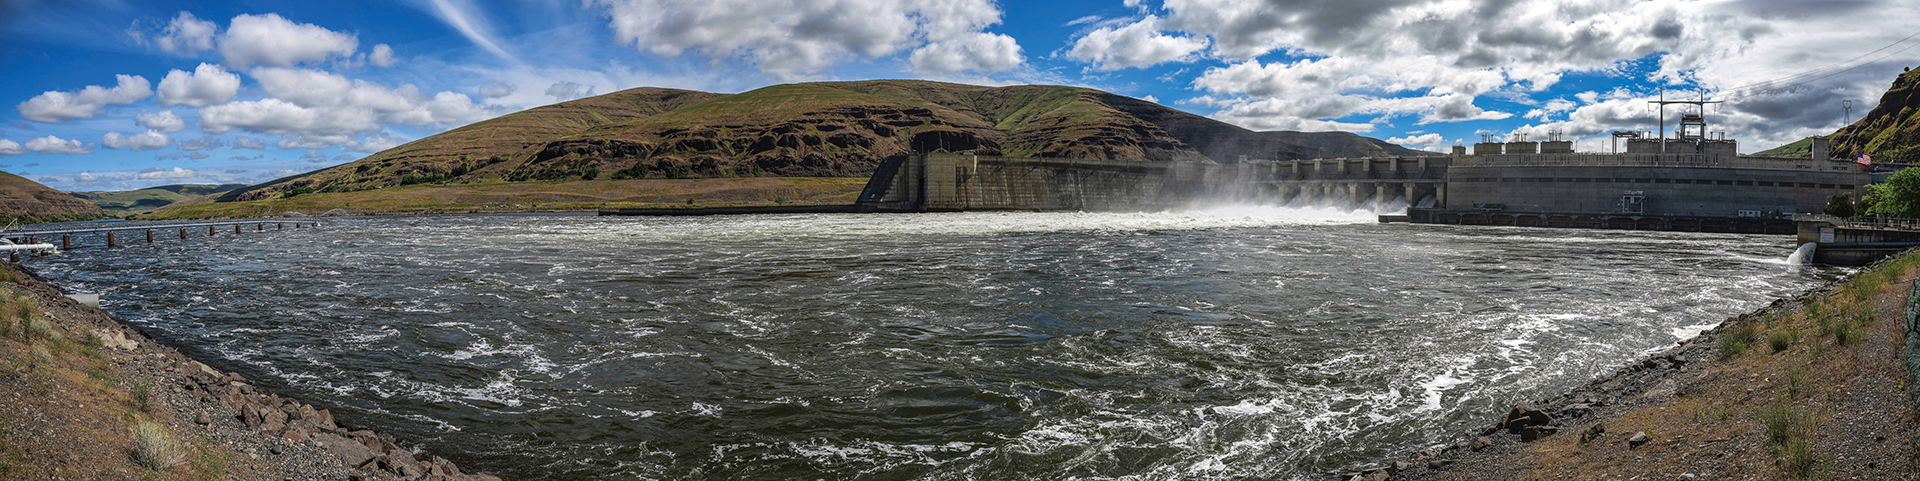 Salmon abundance in the Columbia will not be restored until the lower four Snake River dams are breached. Period.